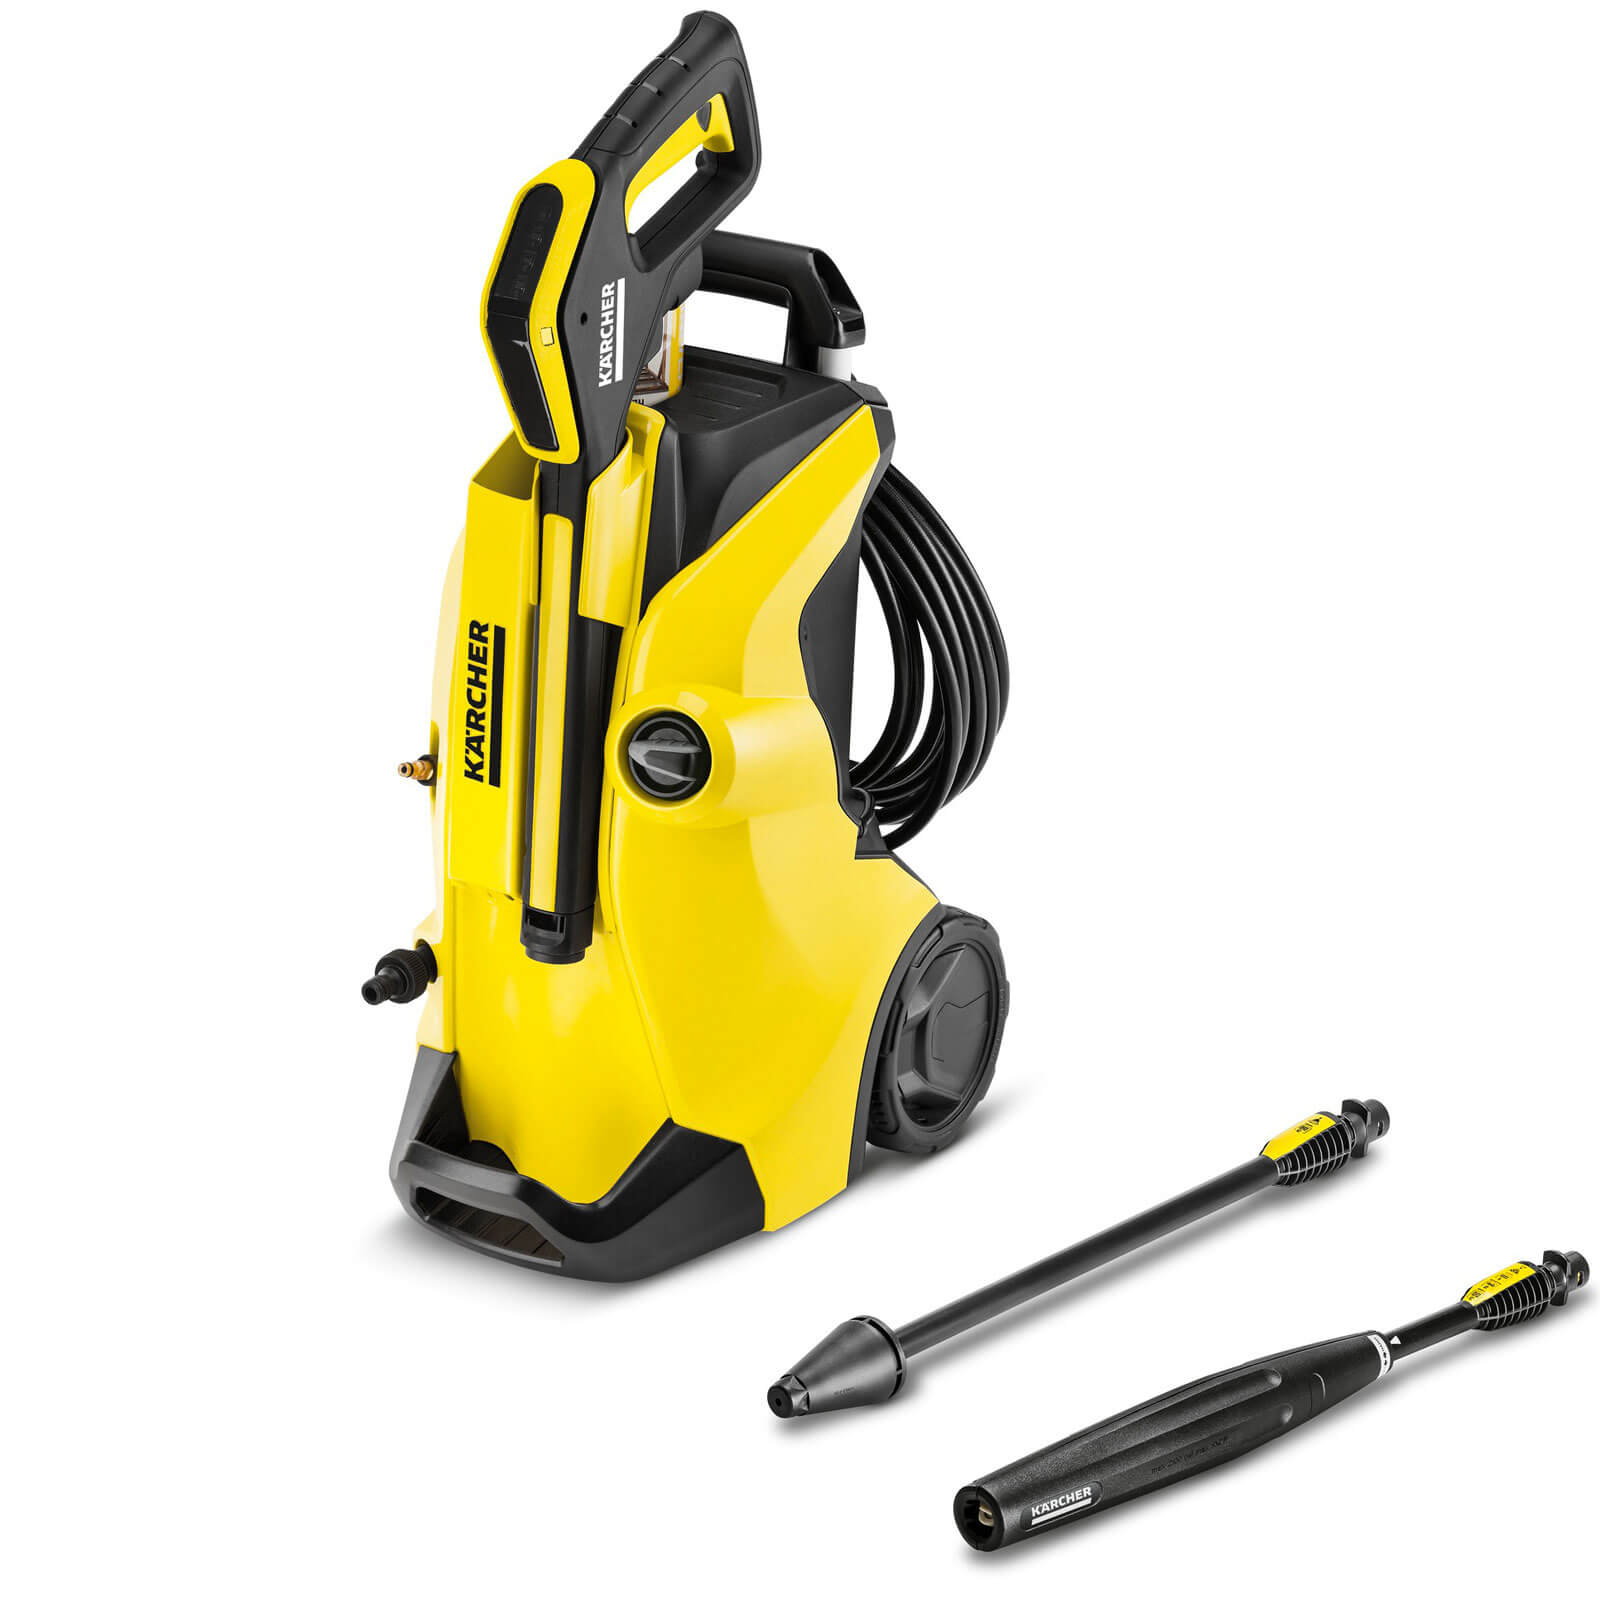 Karcher washer shop for cheap garden tools and save online - Karcher k4 premium full control ...